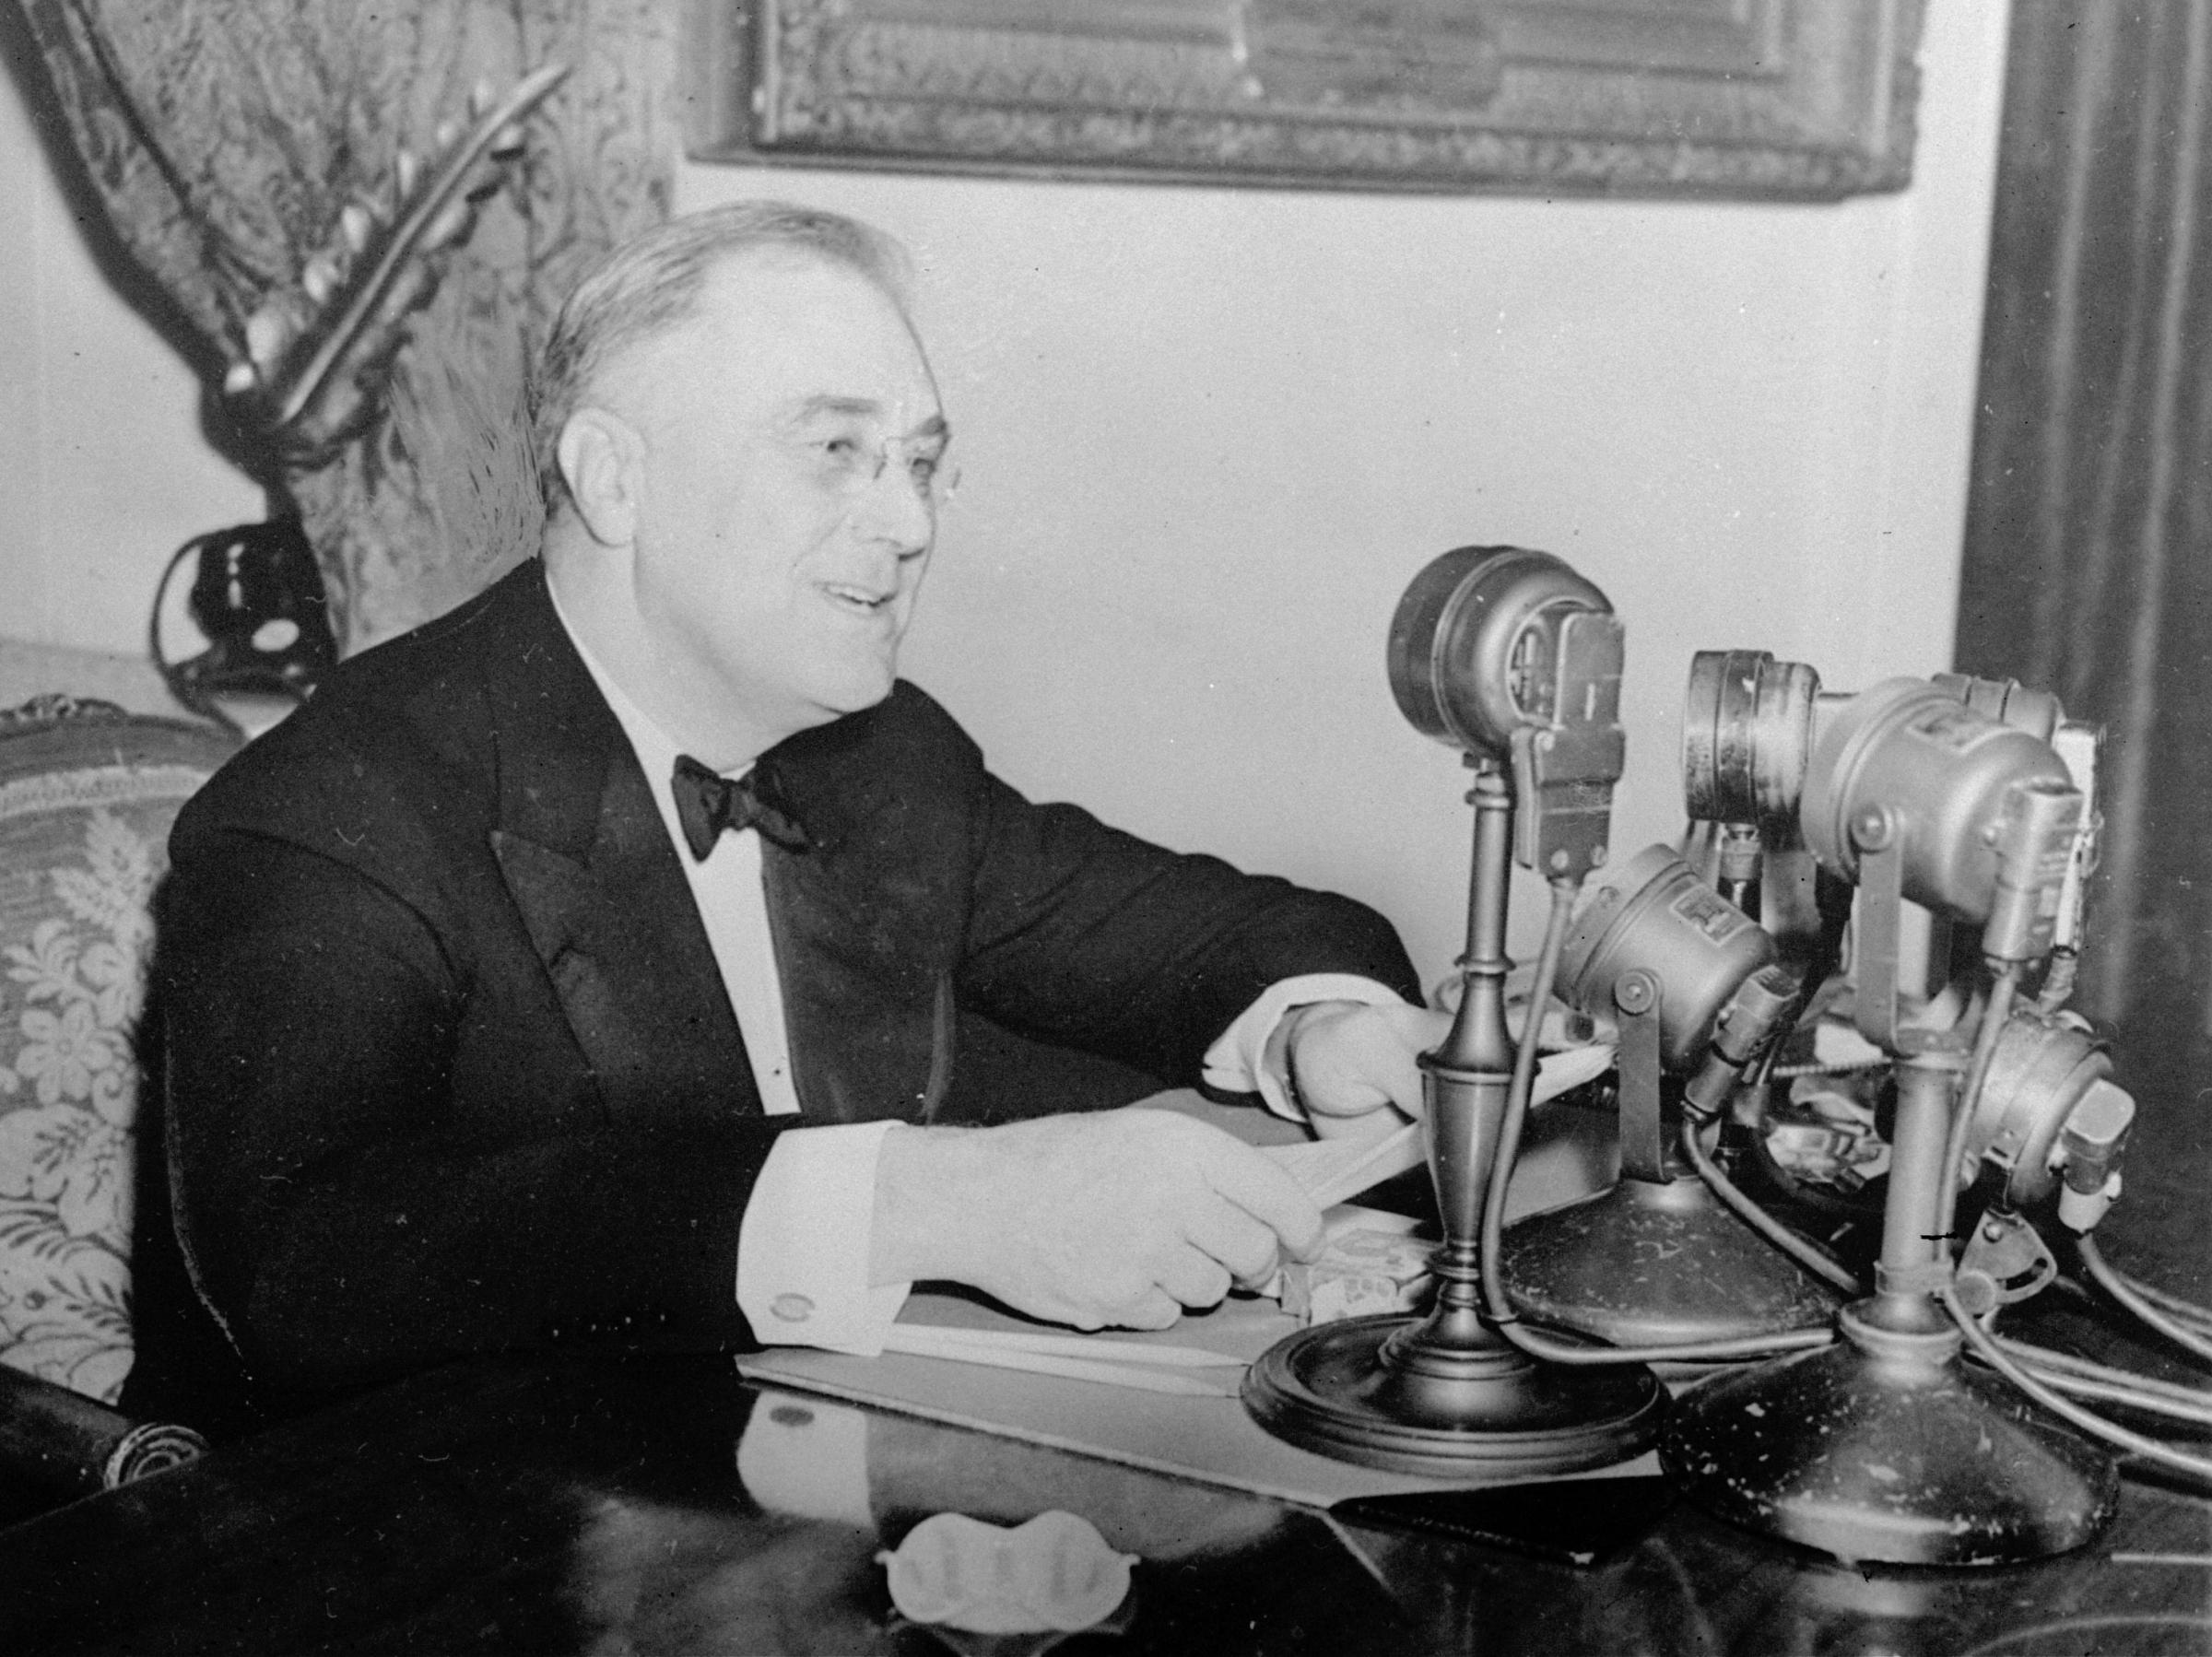 franklin chat Full text and audio mp3 of franklin delano roosevelt speech - first fireside chat.